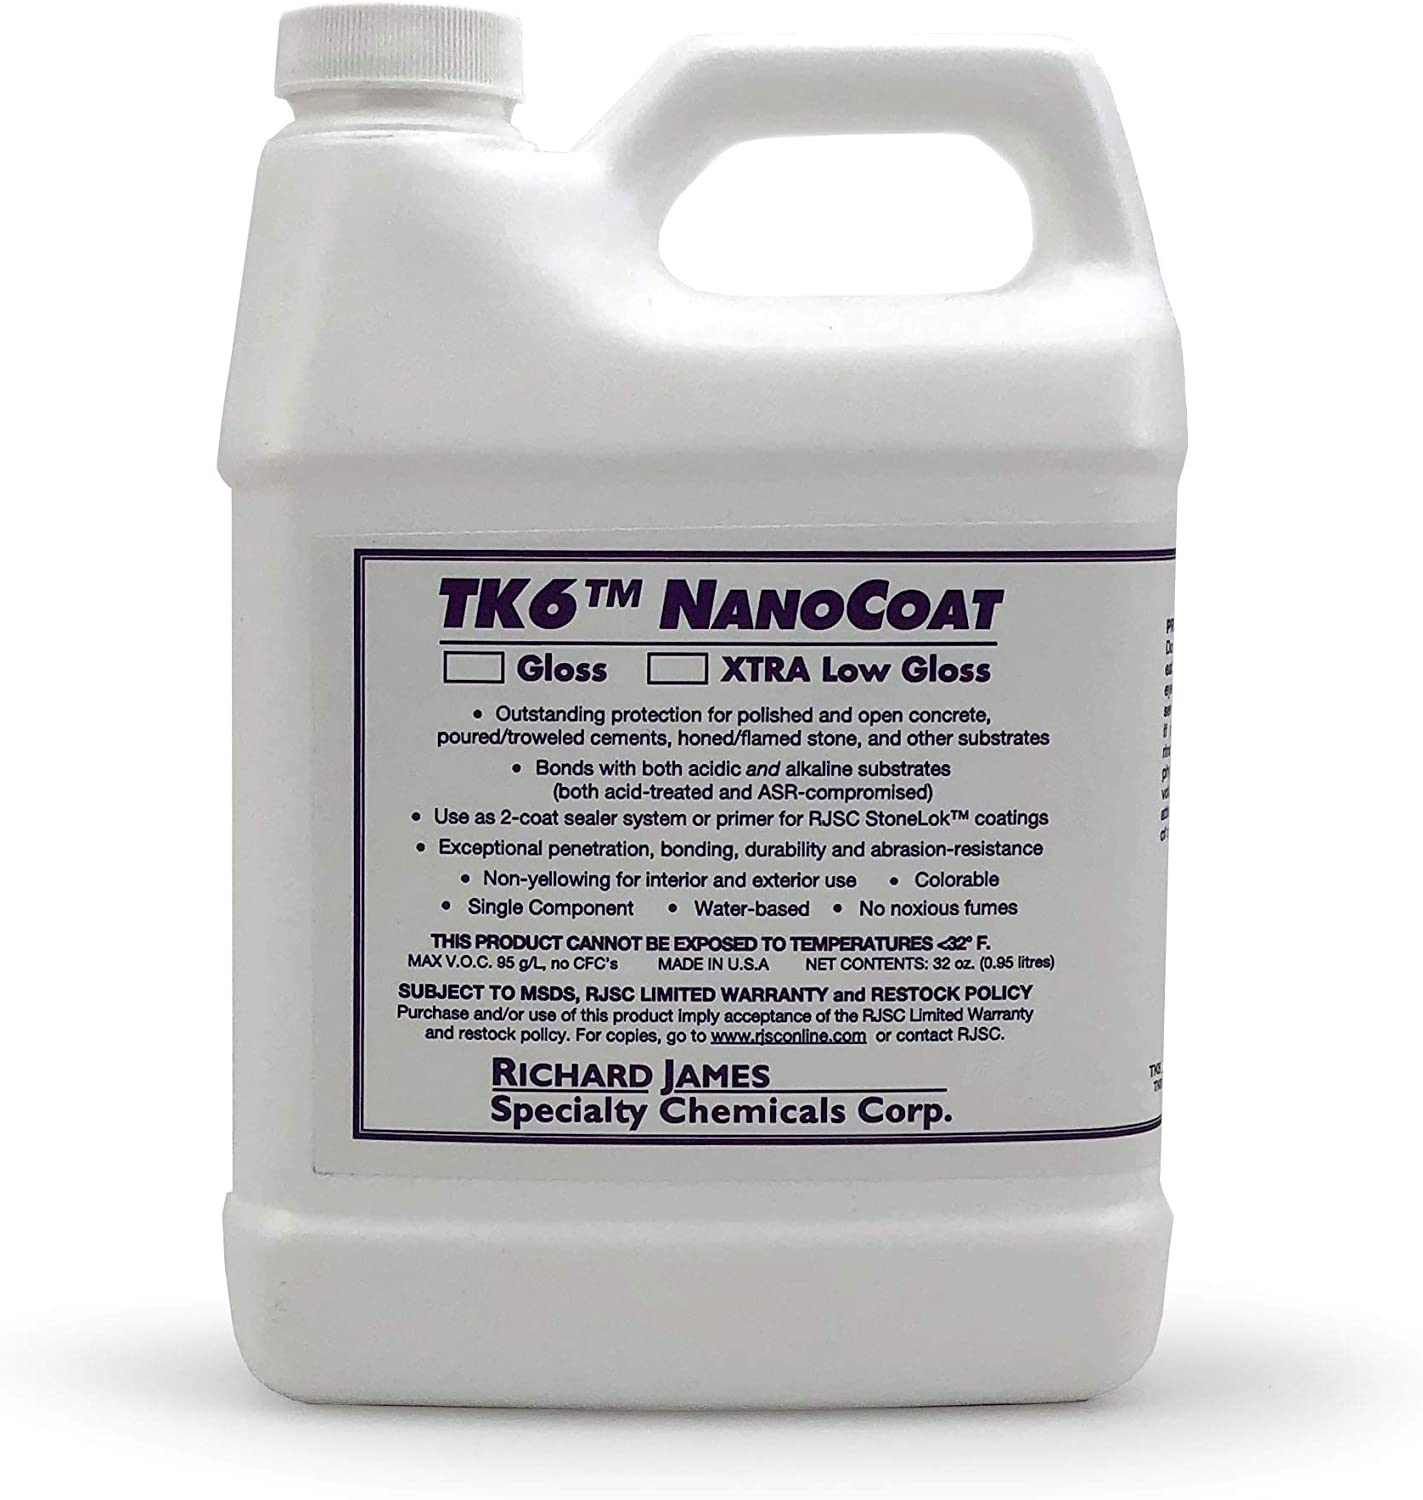 Richard James Specialty Chemical Corp. TK6 Nanocoat Concrete Countertop Sealer, 32 Ounces Quart, Extra Low Gloss, Pack of 1